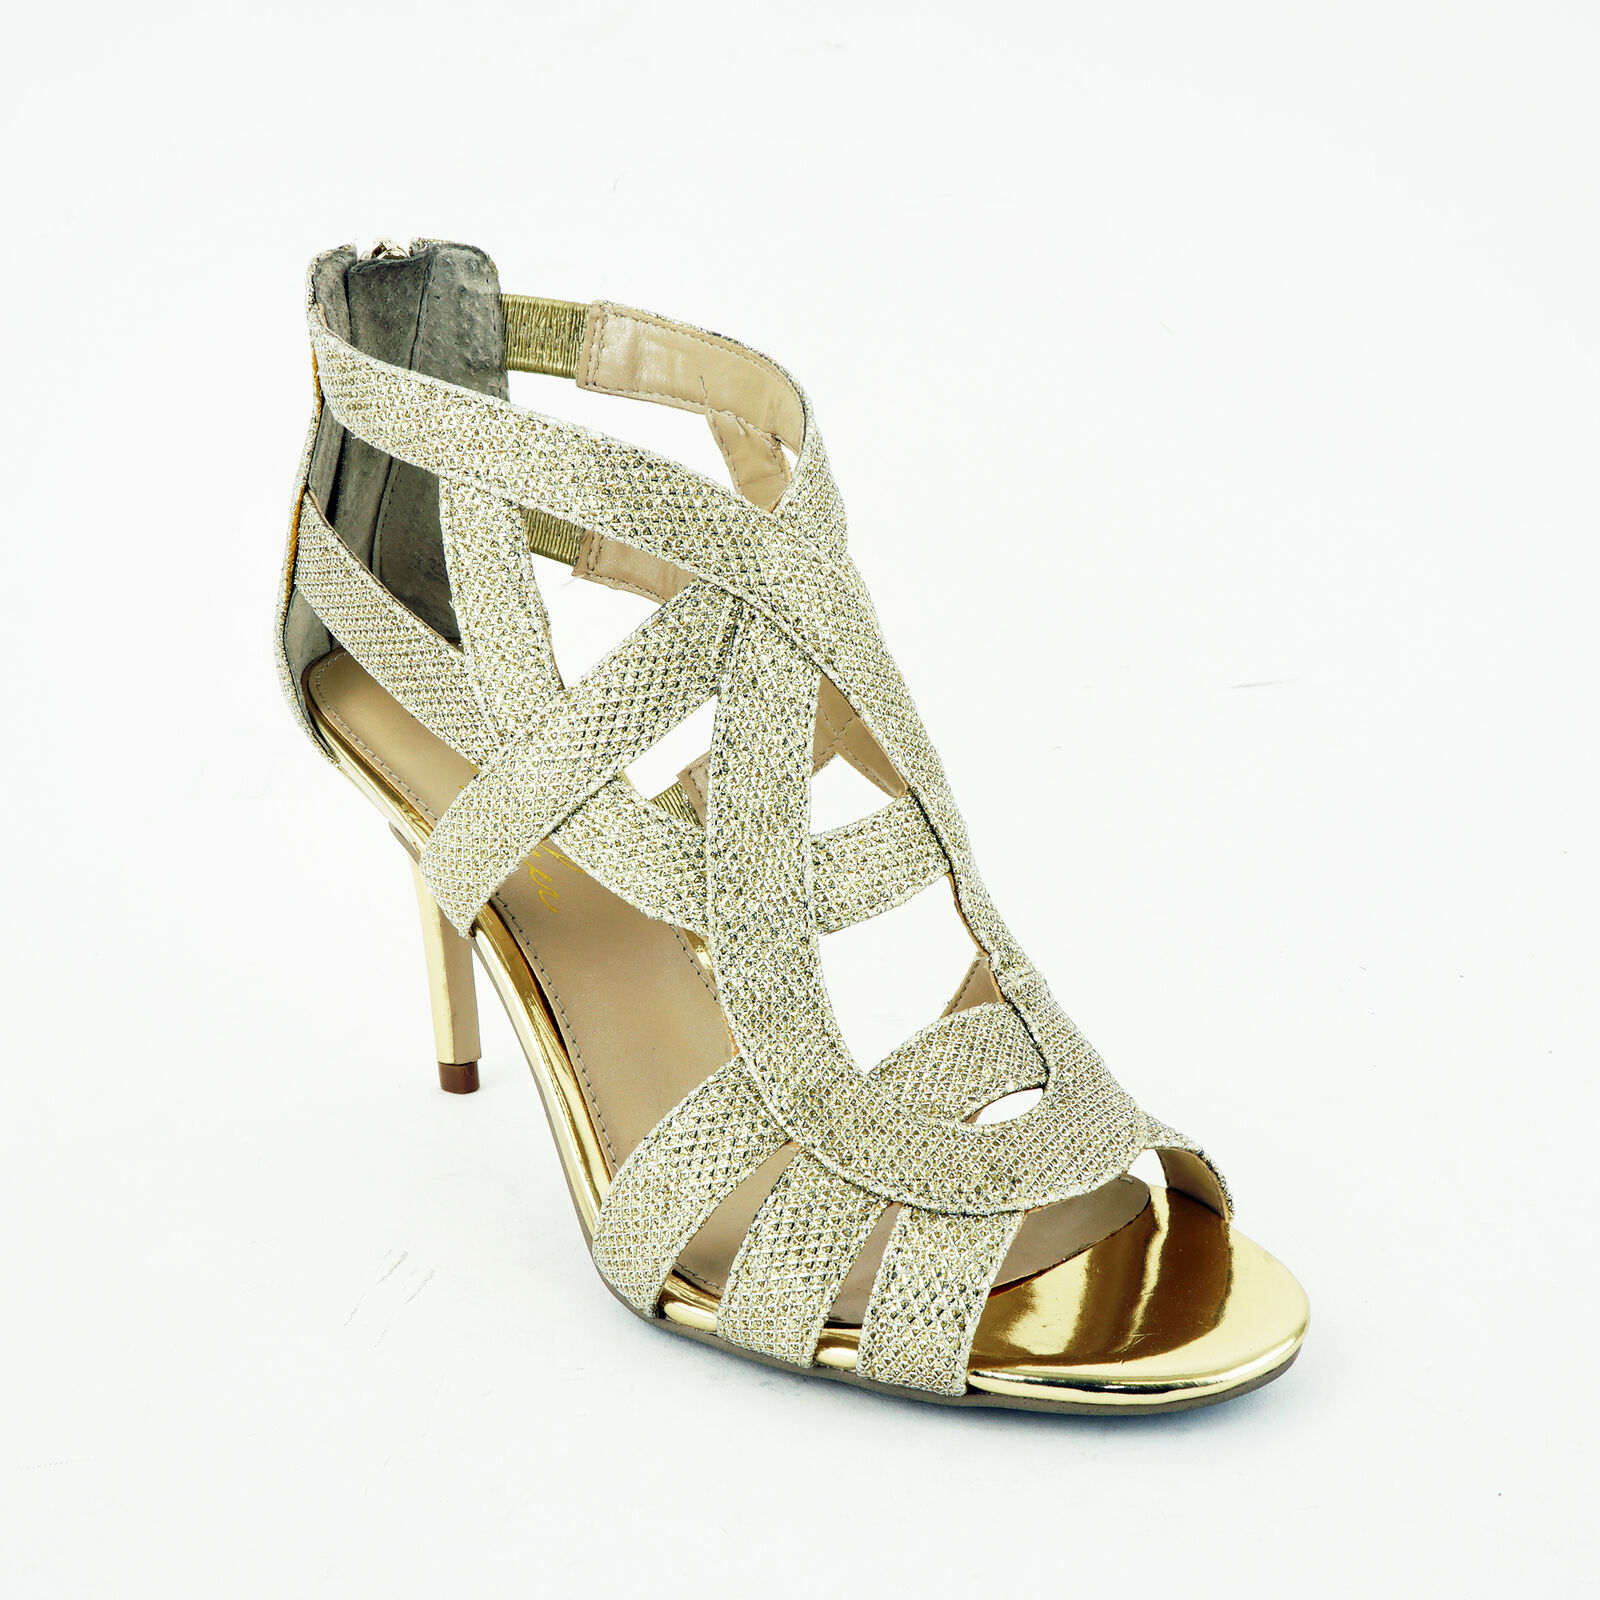 9bf457a3a6 ... UPC 888474009800 product image for Marc Fisher Nala3 Women Us 7 Gold  Sandals Pre Owned Blemish